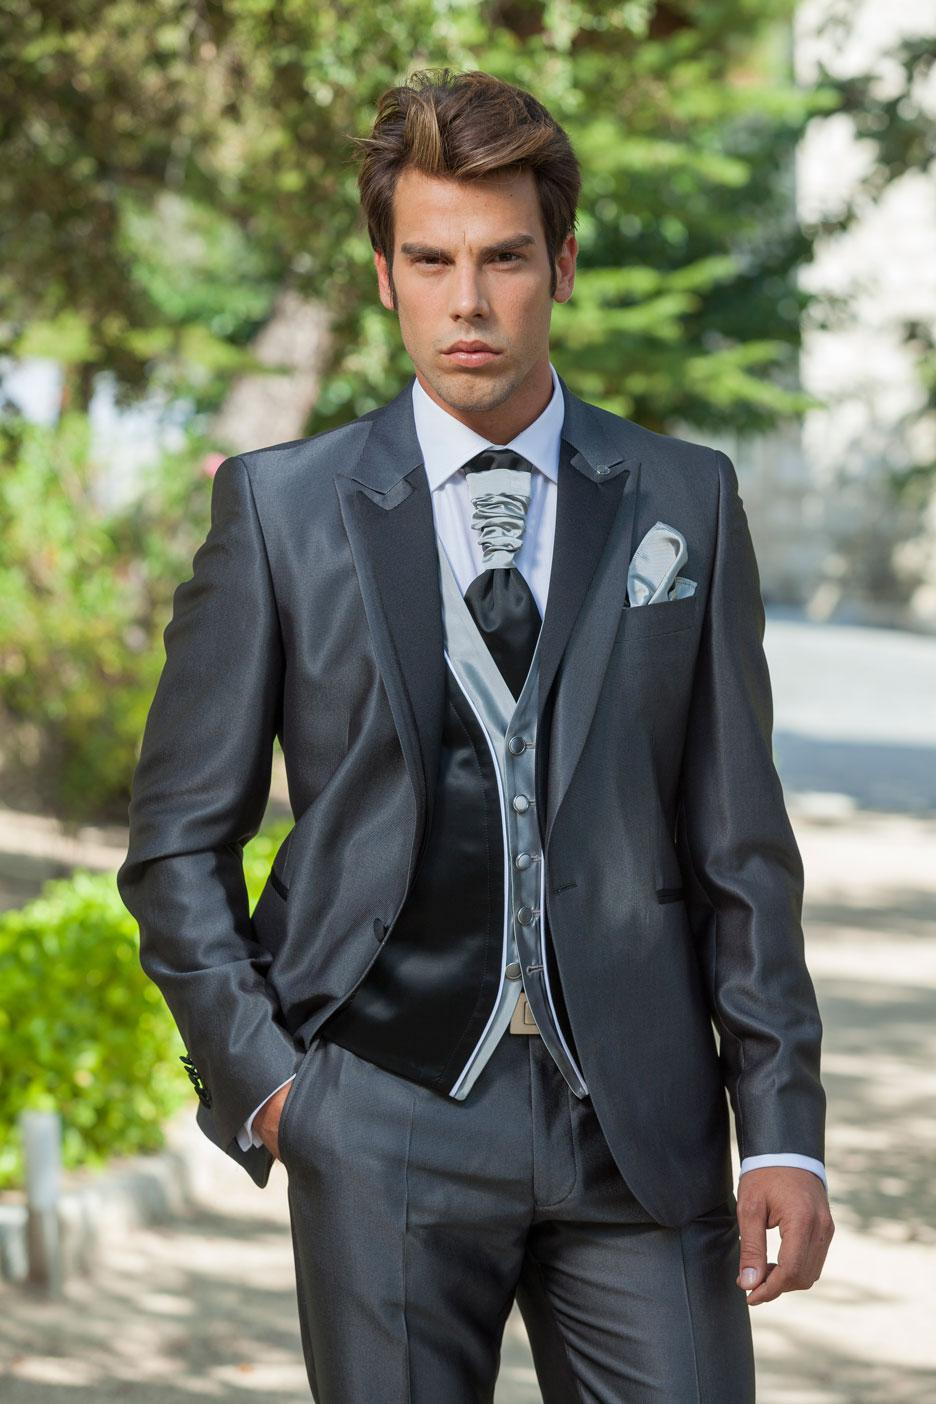 Best Prom Suits 2016 - Hardon Clothes